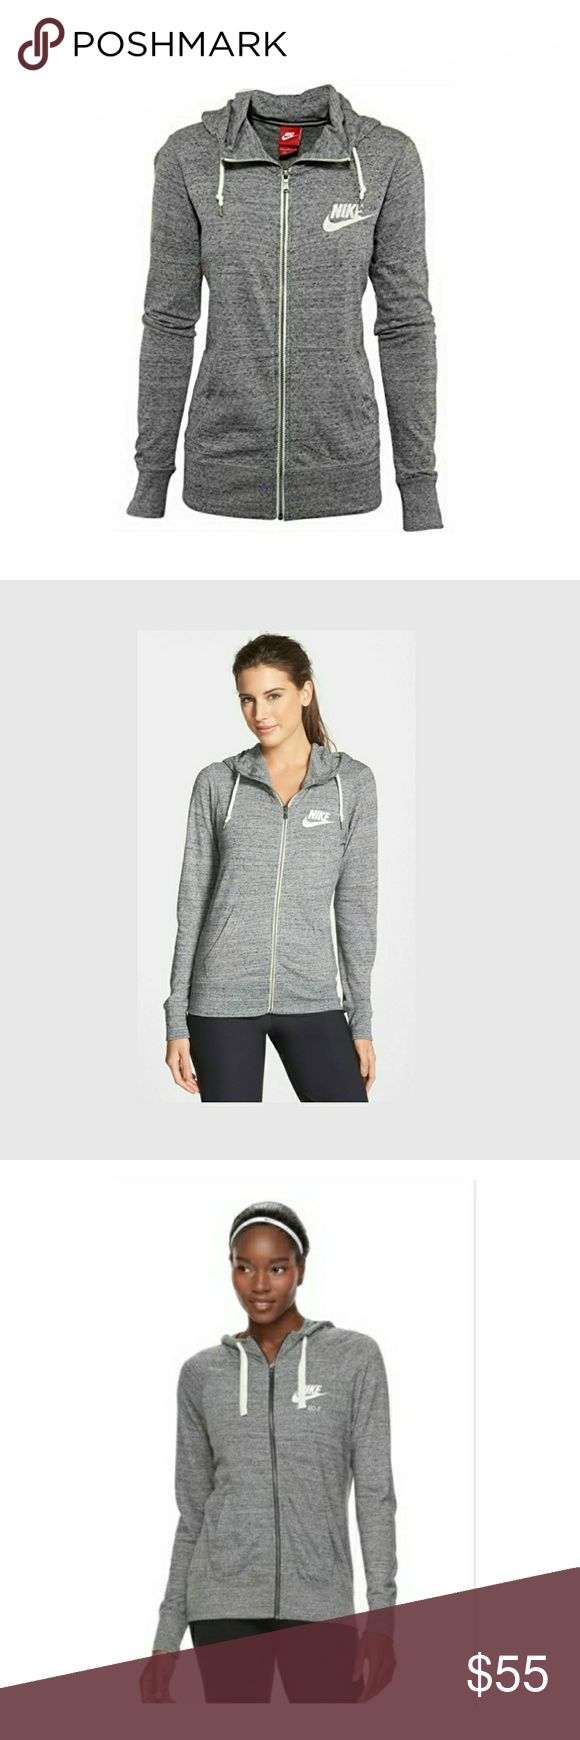 NIKE zip hoodie❤❤ brand new never been worn!! Women Nike gym vintage zip hoodie no tag but never been worn light gray color size large will fit medium too... great for running 😍😍 Nike Other